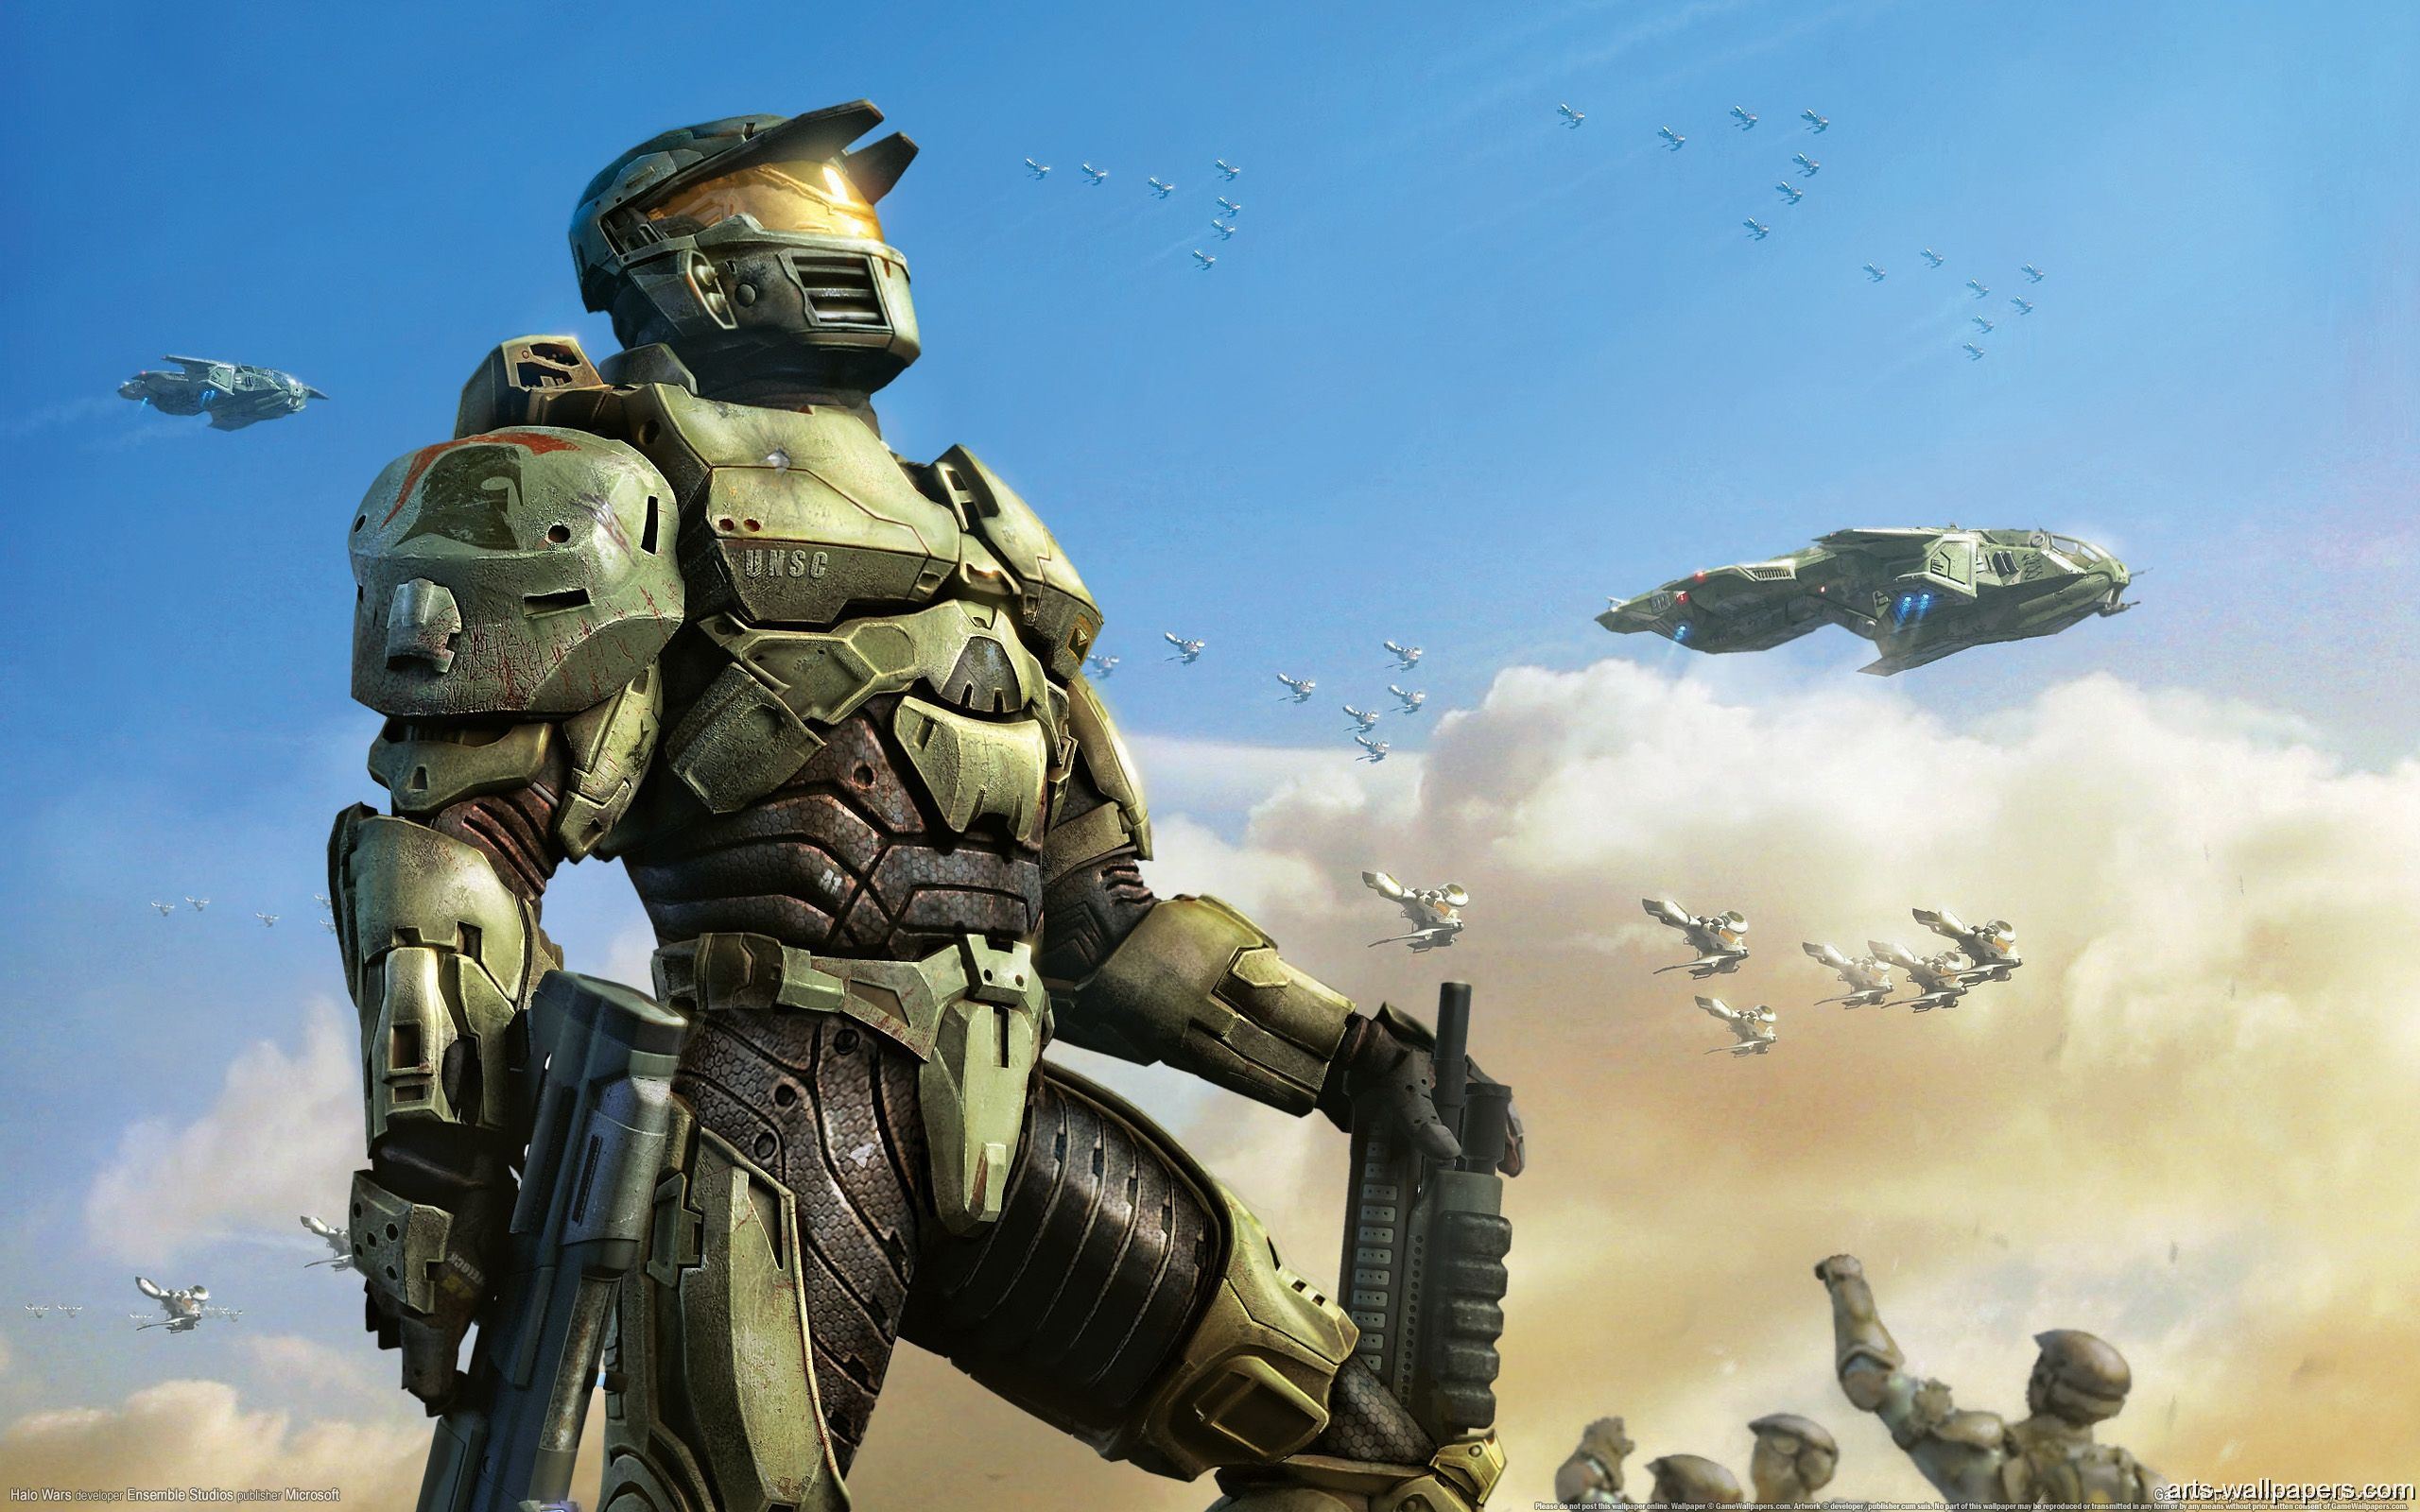 Halo Wars Unsc Spartan Pc Games Art Halo Backgrounds Background Images